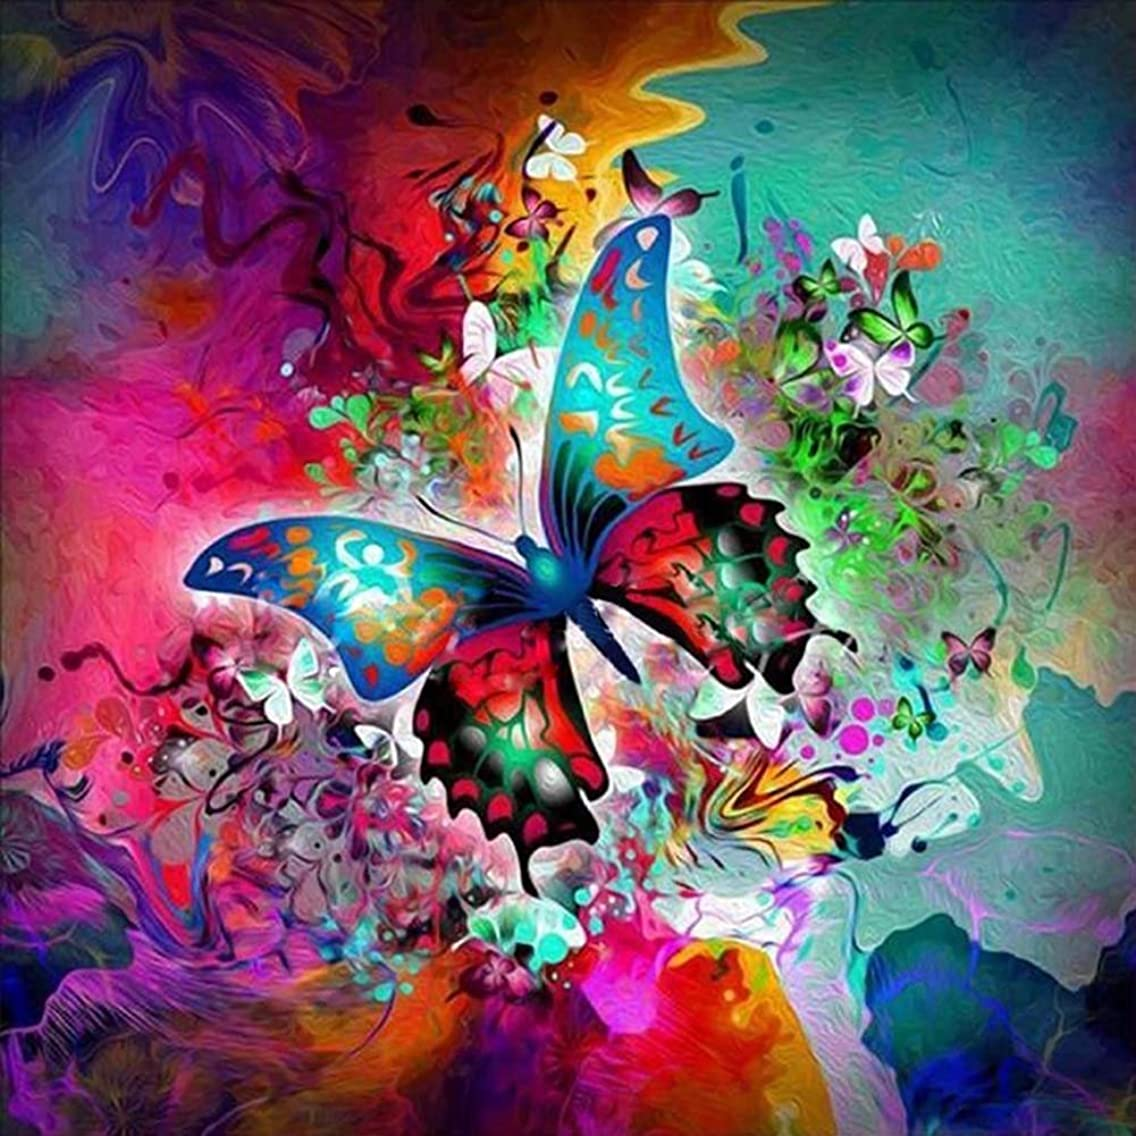 5D Full Drill Diamond Painting Kit, KISSBUTY DIY Diamond Rhinestone Painting Kits for Adults and Beginner Embroidery Arts Craft Home Decor, 15.8 X 15.8 Inch (Butterfly Diamond Painting)